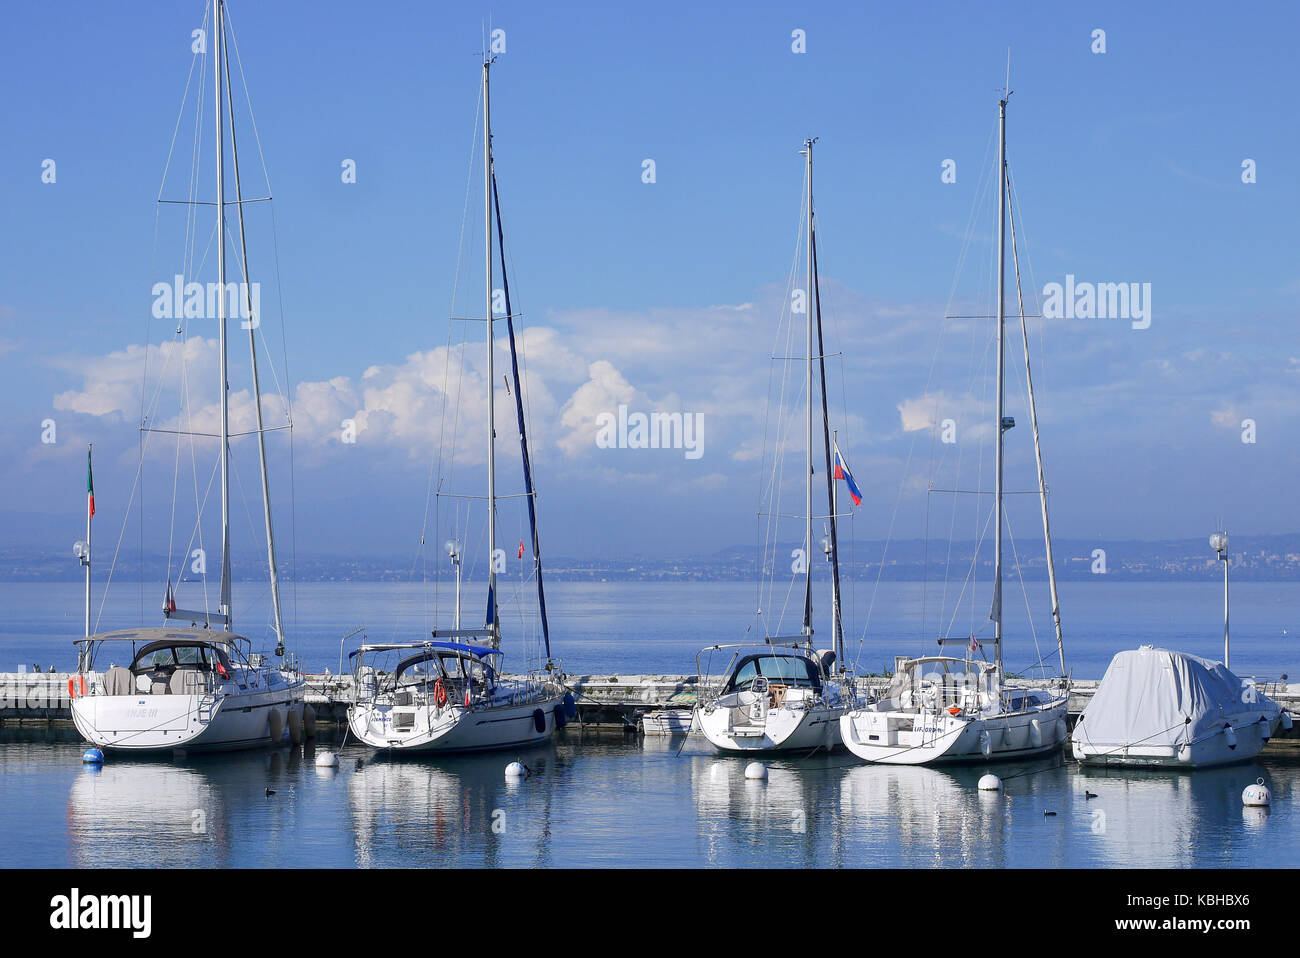 Sailboats lay at quay in the pleasance harbor of Evian-les-BAins, Savoie, France Stock Photo